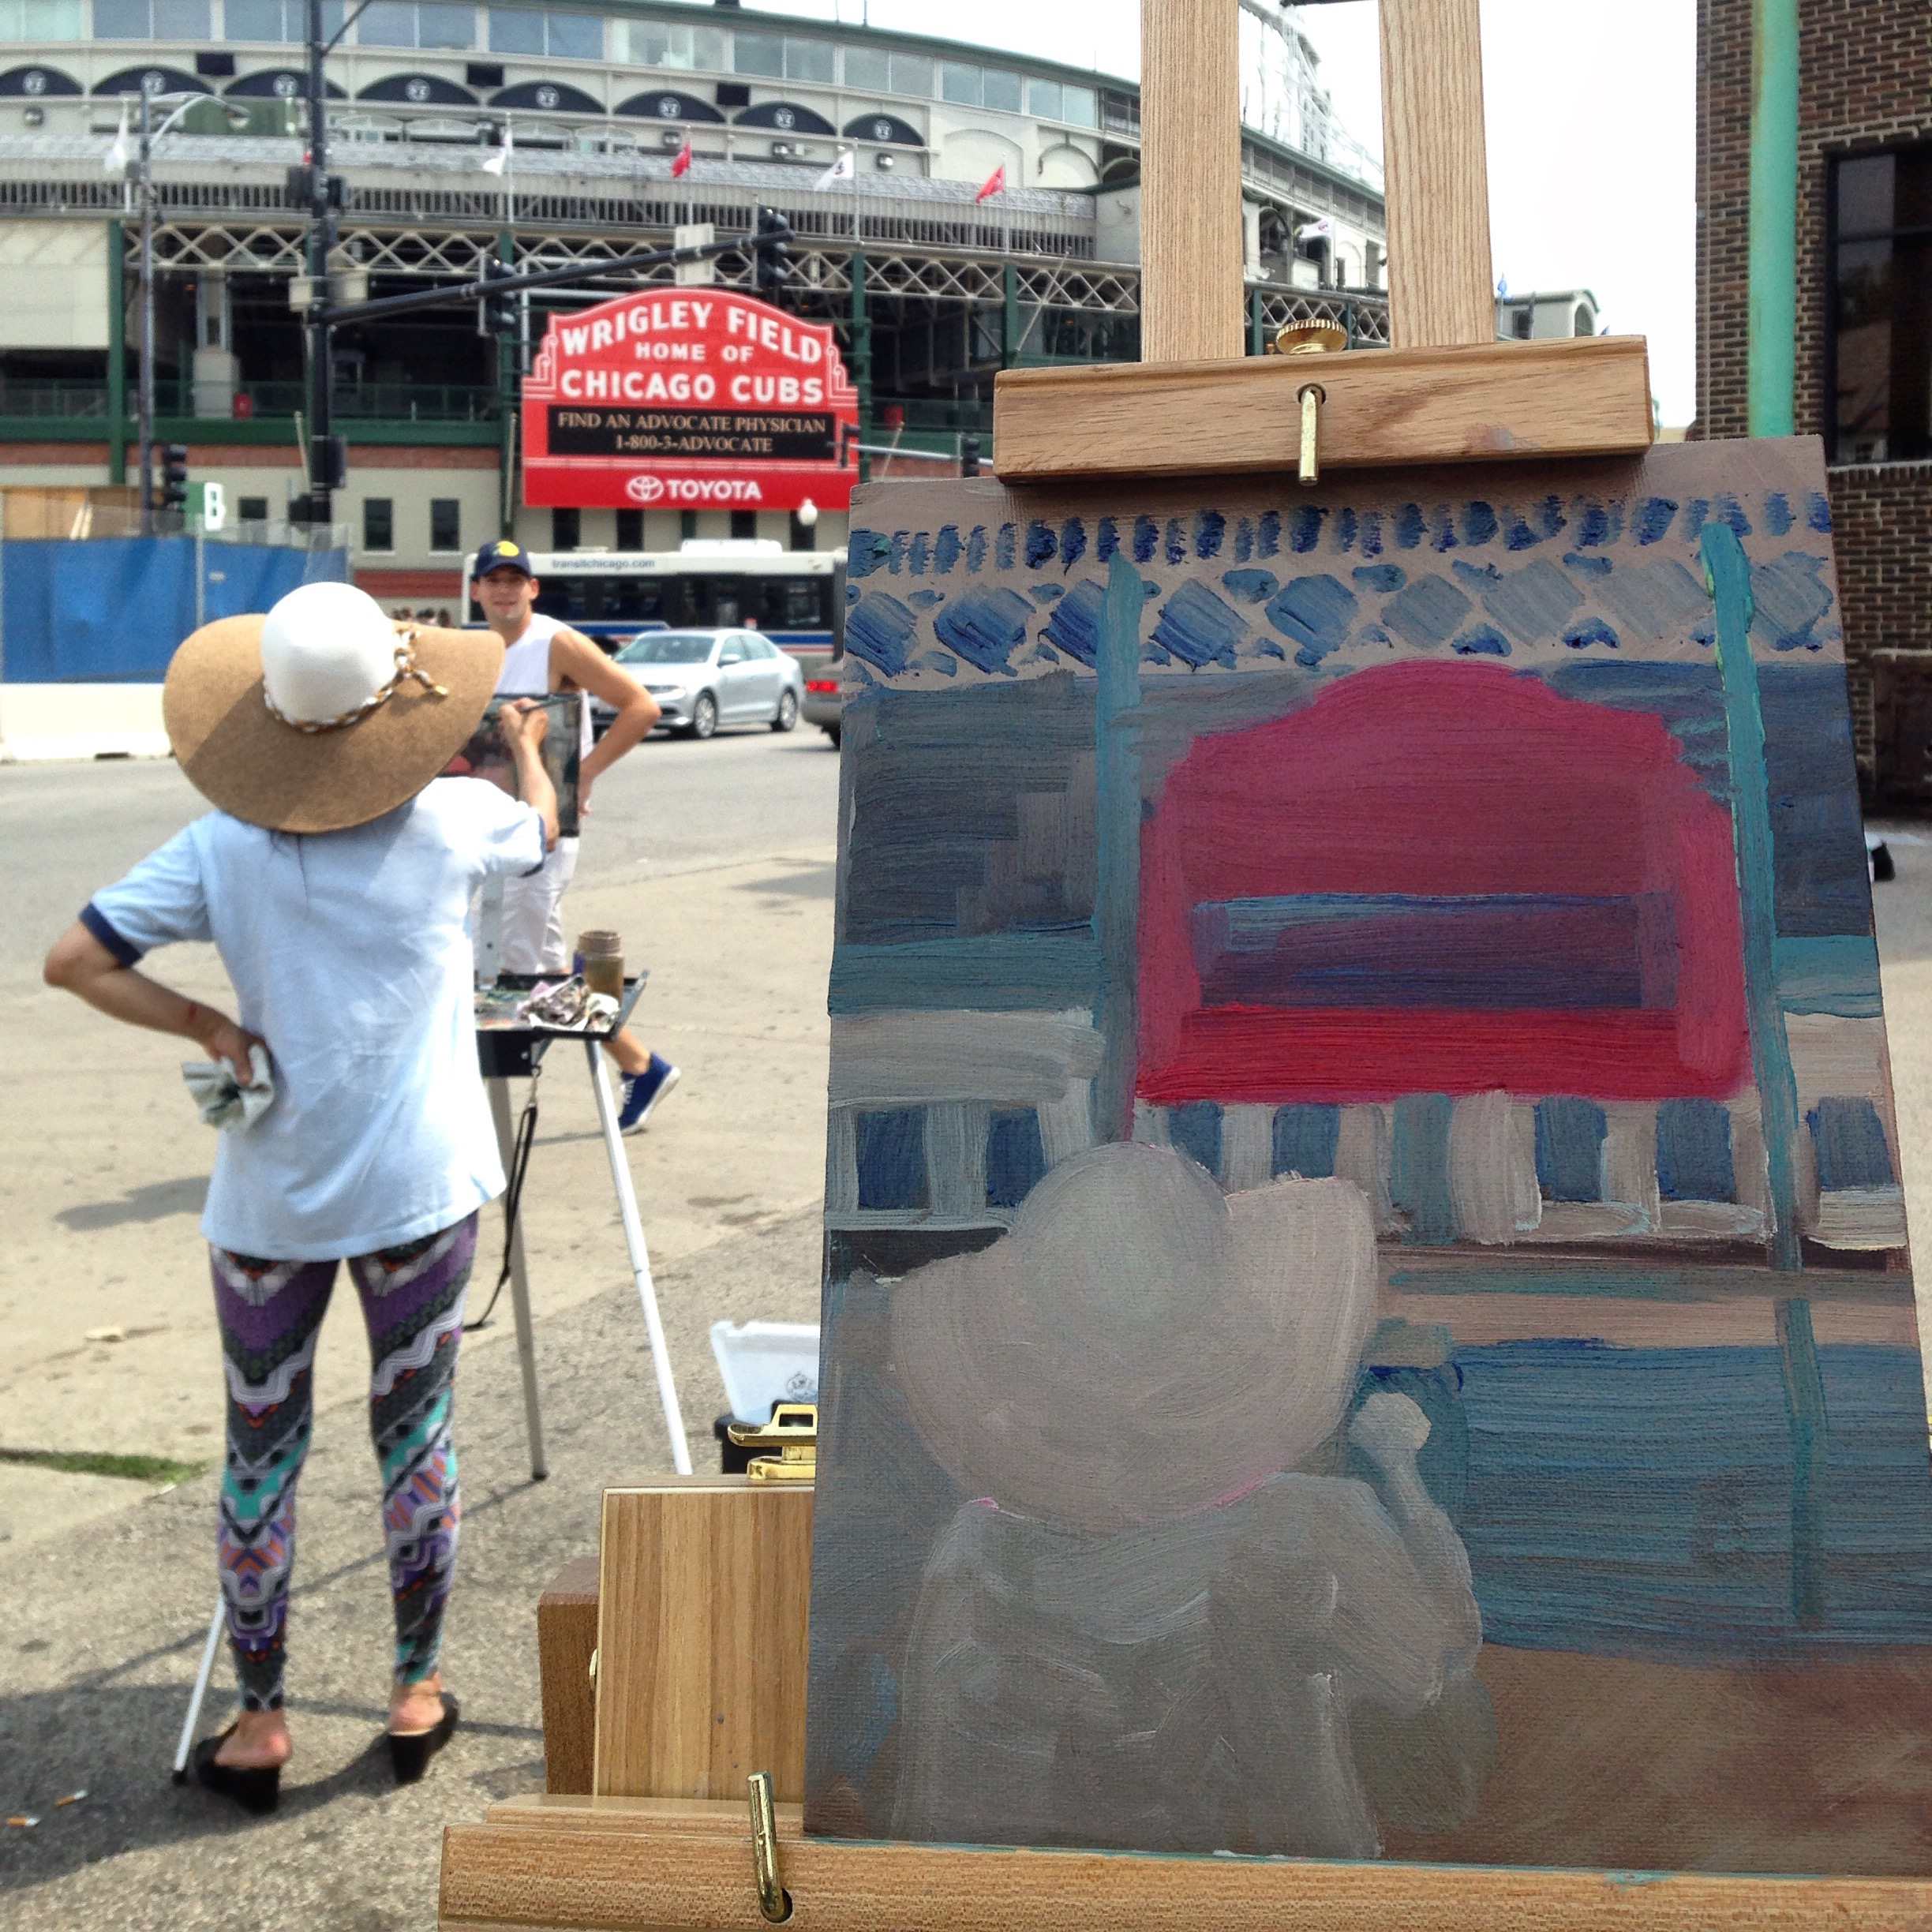 Work in progress shot of my Wrigley Field painting, with my fellow painter in the foreground. Included in this photo: friendly jogger checking us out as he went by. Not included: LOTS of folks in red shirts coming to Wrigleyville for the #MoustacheCrawl.